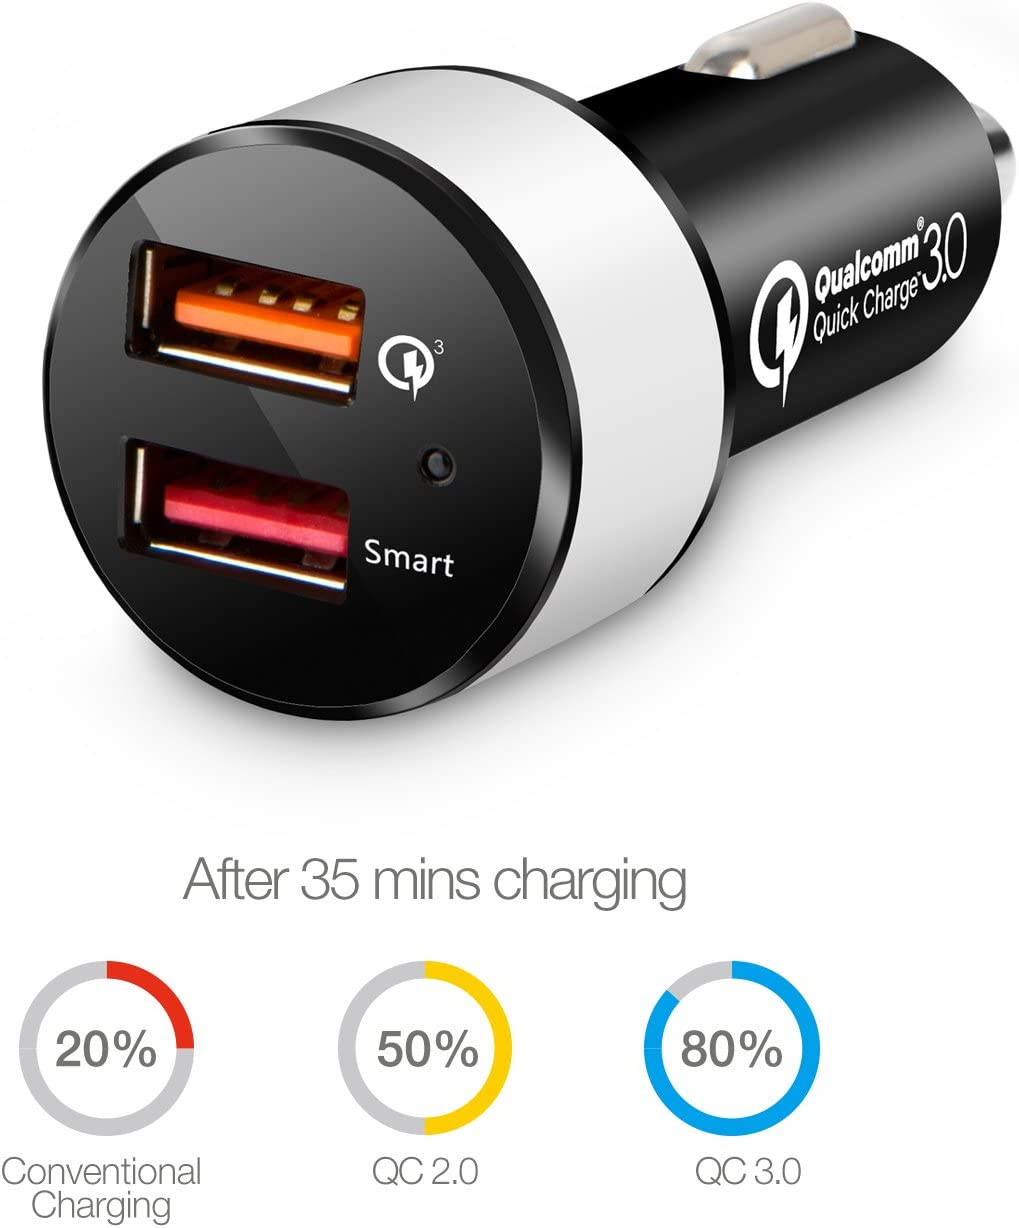 LG V34 Quick Charge 3.0 Car Charger Tablet /& More iKits 30W Dual USB Car Phone Charge Adapter QC3.0 USB for Galaxy S9+//S9//S8+//S8//Edge 5V//2.4A Smart IC for iPhone XR//8//7,iPad Pro//Air//Mini Moto G6